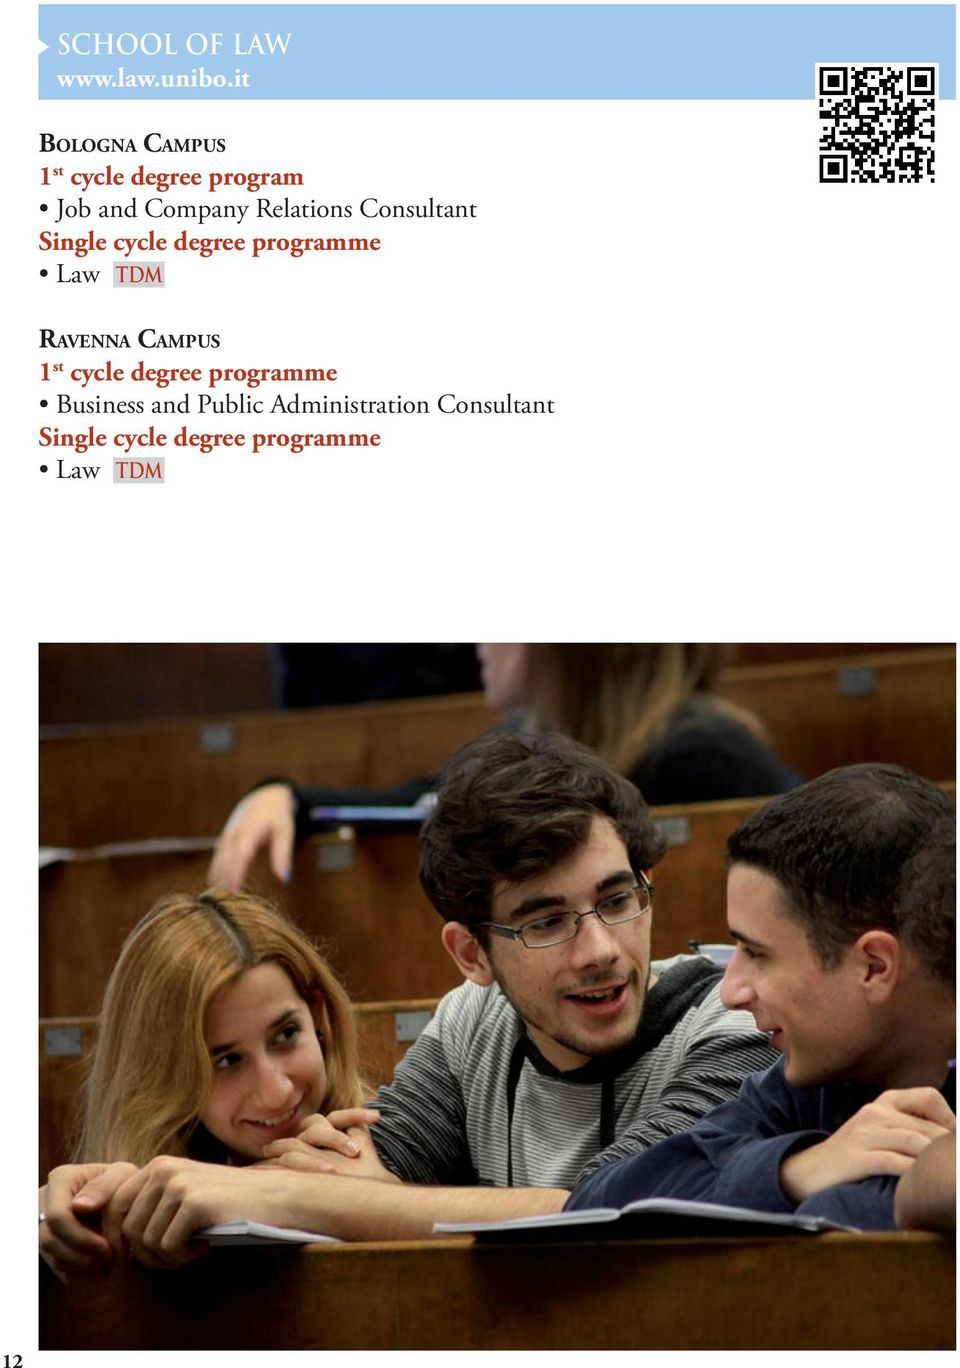 Relations Consultant Single cycle degree programme Law TDM Ravenna